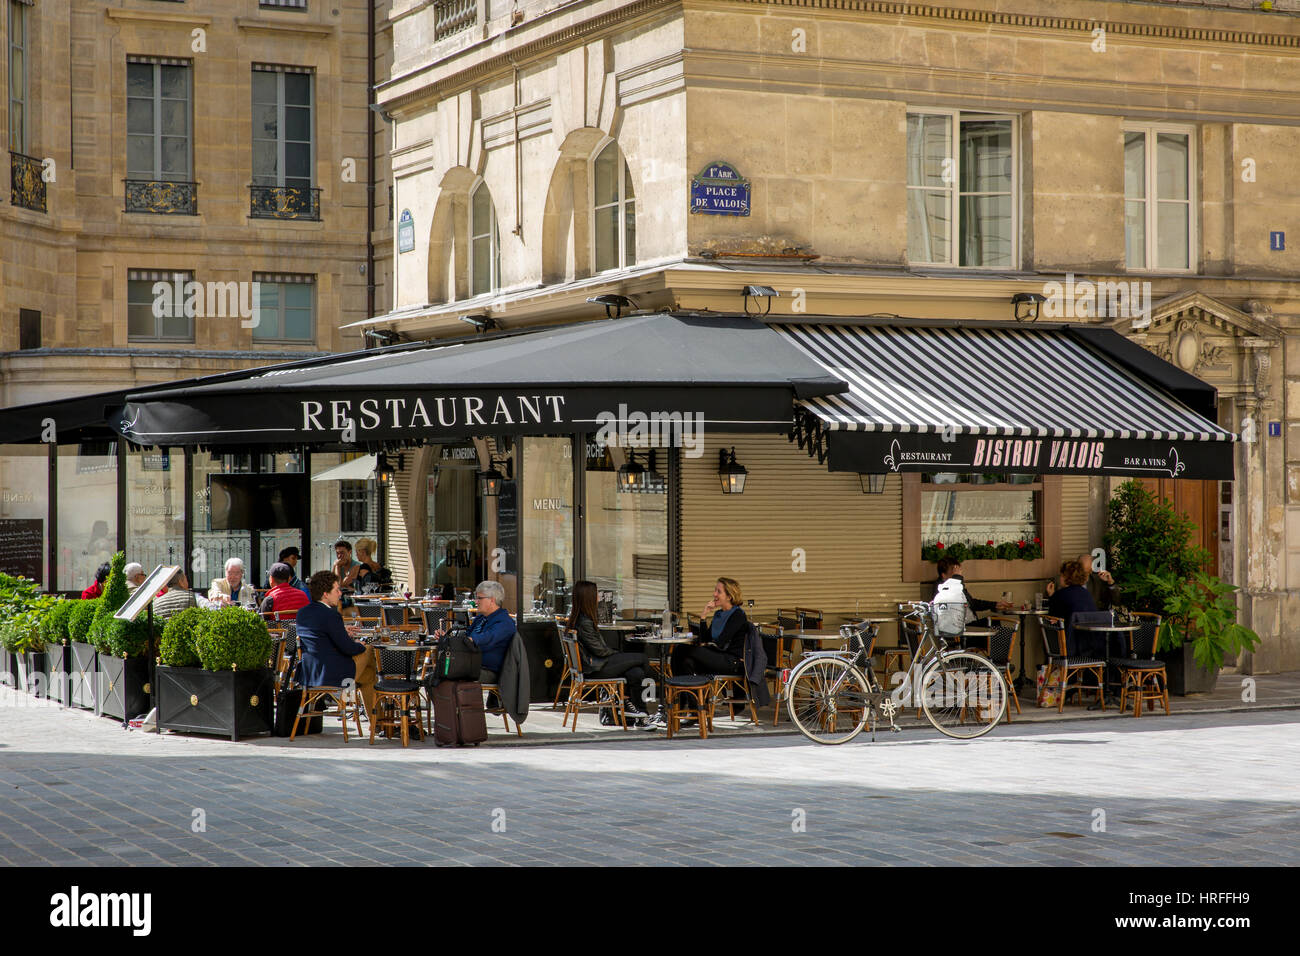 Bistrot Valois at lunchtime near Palais Royal, Paris, France - Stock Image